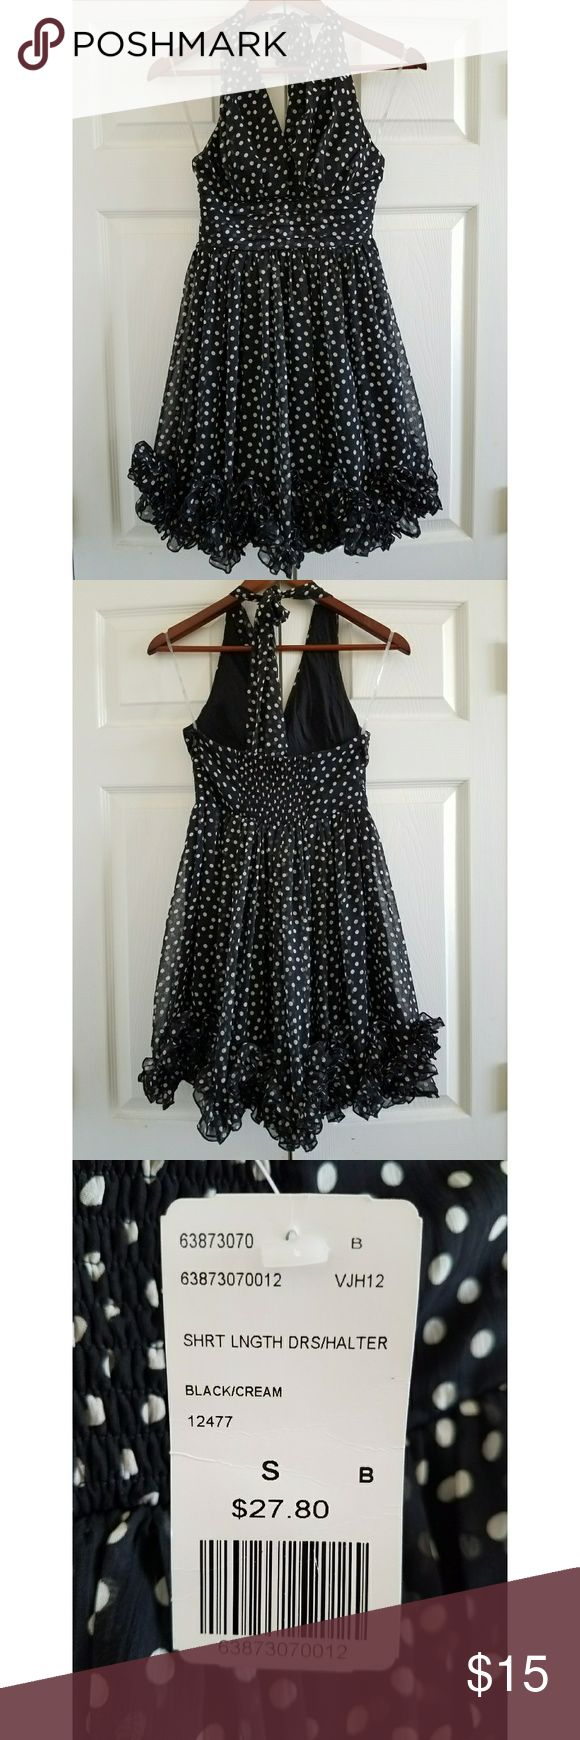 👗 Polka Dot Halter Dress 👗 Perfect for dinner or a night out! Never worn and perfect condition. Black with cream polka dots. 👗 Forever 21 Dresses